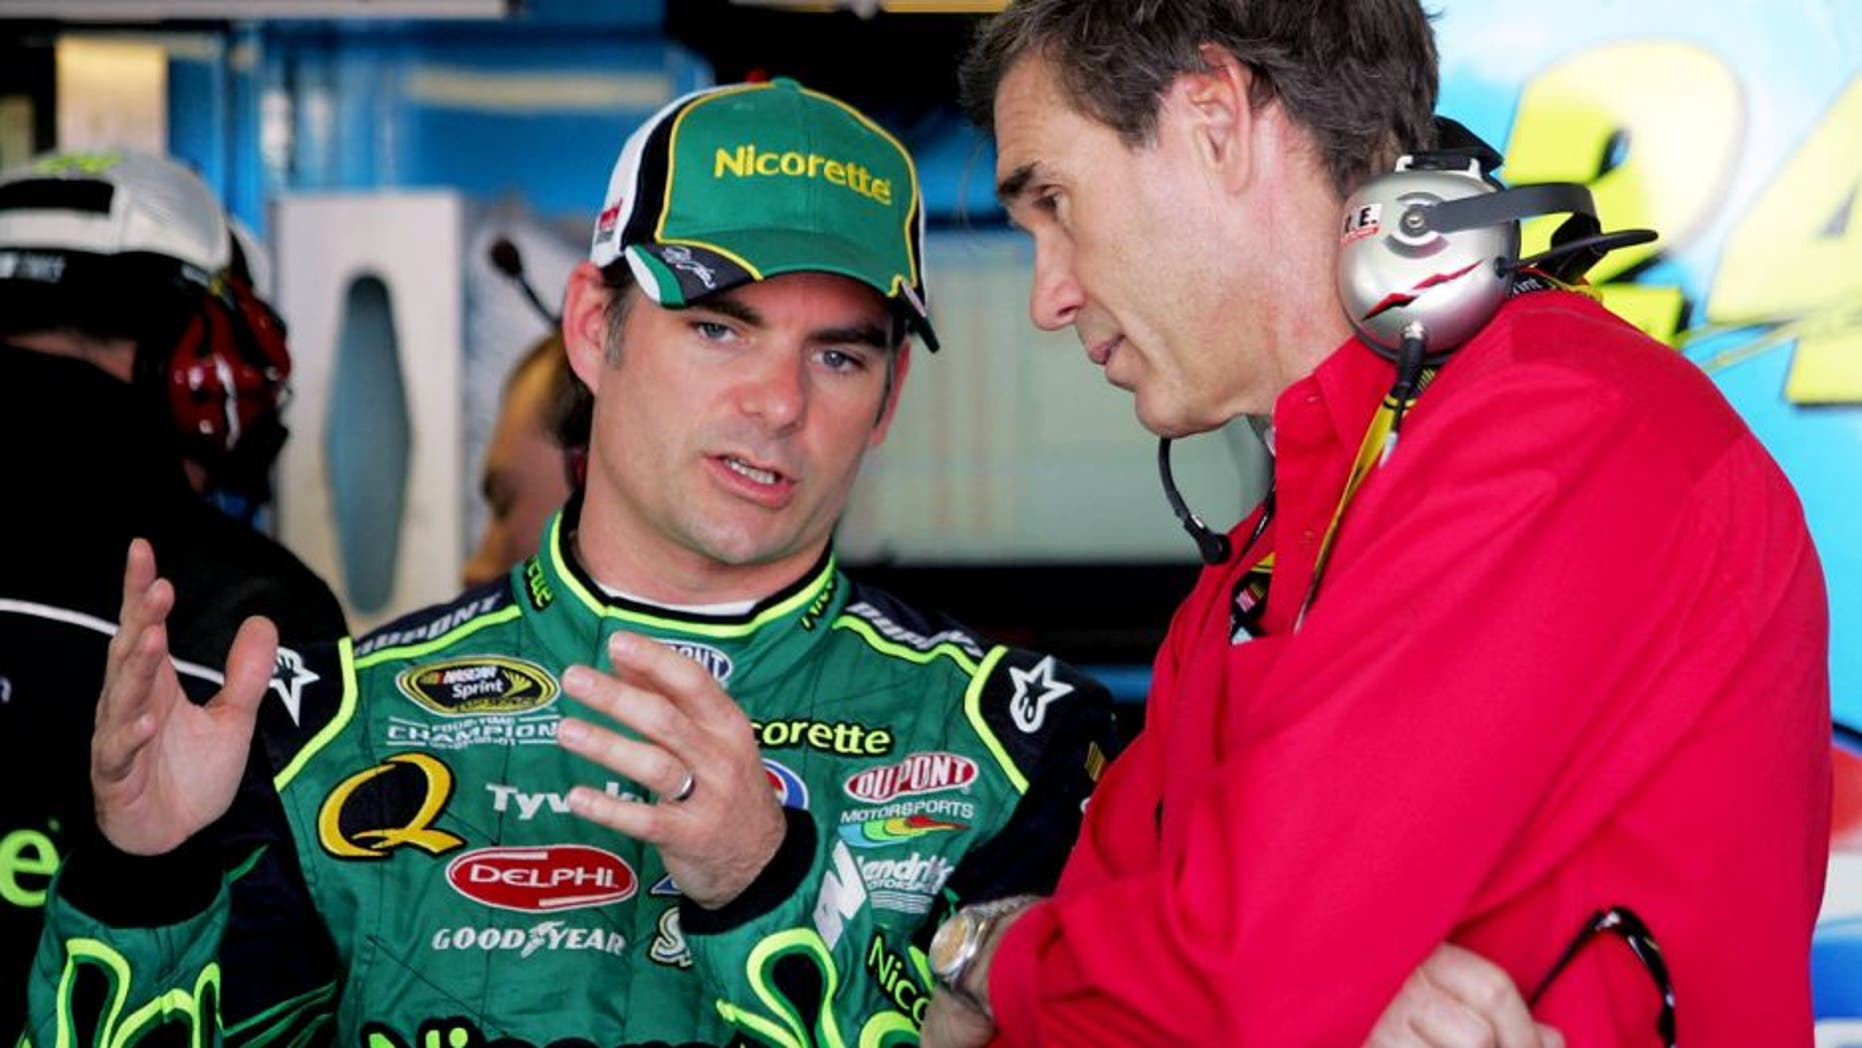 AVONDALE, AZ - APRIL 10: (L-R) Jeff Gordon, driver of the #24 Dupont/Nicorette Chevrolet, talks with Ray Evernham, NASCAR team owner for Gillett Evernham Motorsports, during practice for the NASCAR Sprint Cup Series Subway Fresh Fit 500 at Phoenix International Raceway on April 10, 2008 in Avondale, Arizona. (Photo by Todd Warshaw/Getty Images for NASCAR)